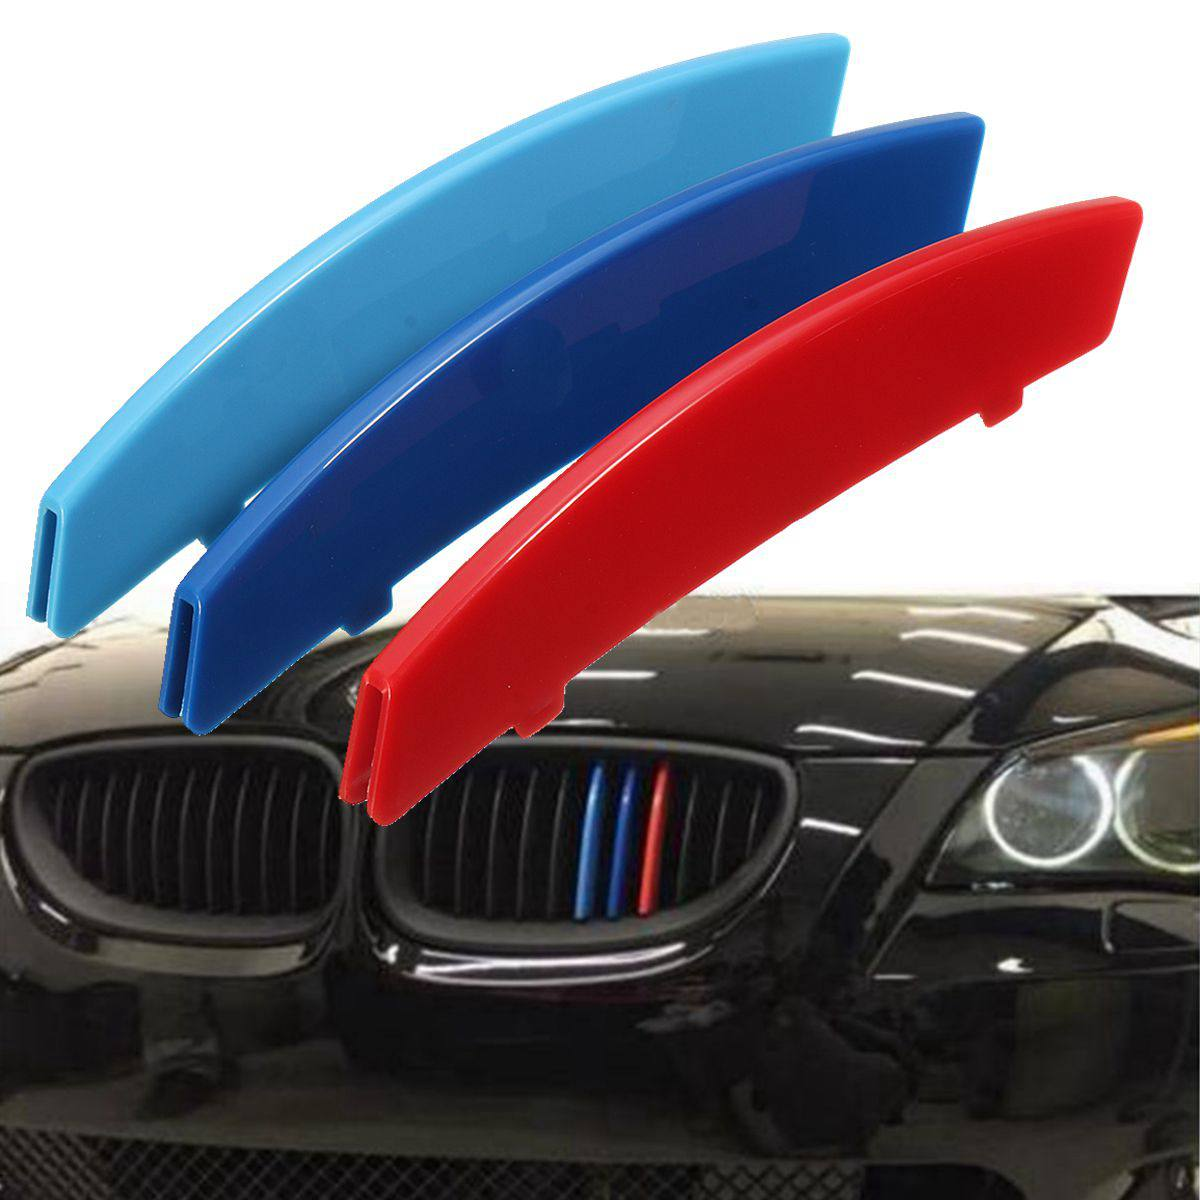 3pcs 3D <font><b>Car</b></font> Racing Grille Sport <font><b>Stripe</b></font> Clip ABS Decal Sticker For <font><b>BMW</b></font> 3 Series F30 F31 F35 E90 5 Series F10 F18 E60 X5 X6 E70 image